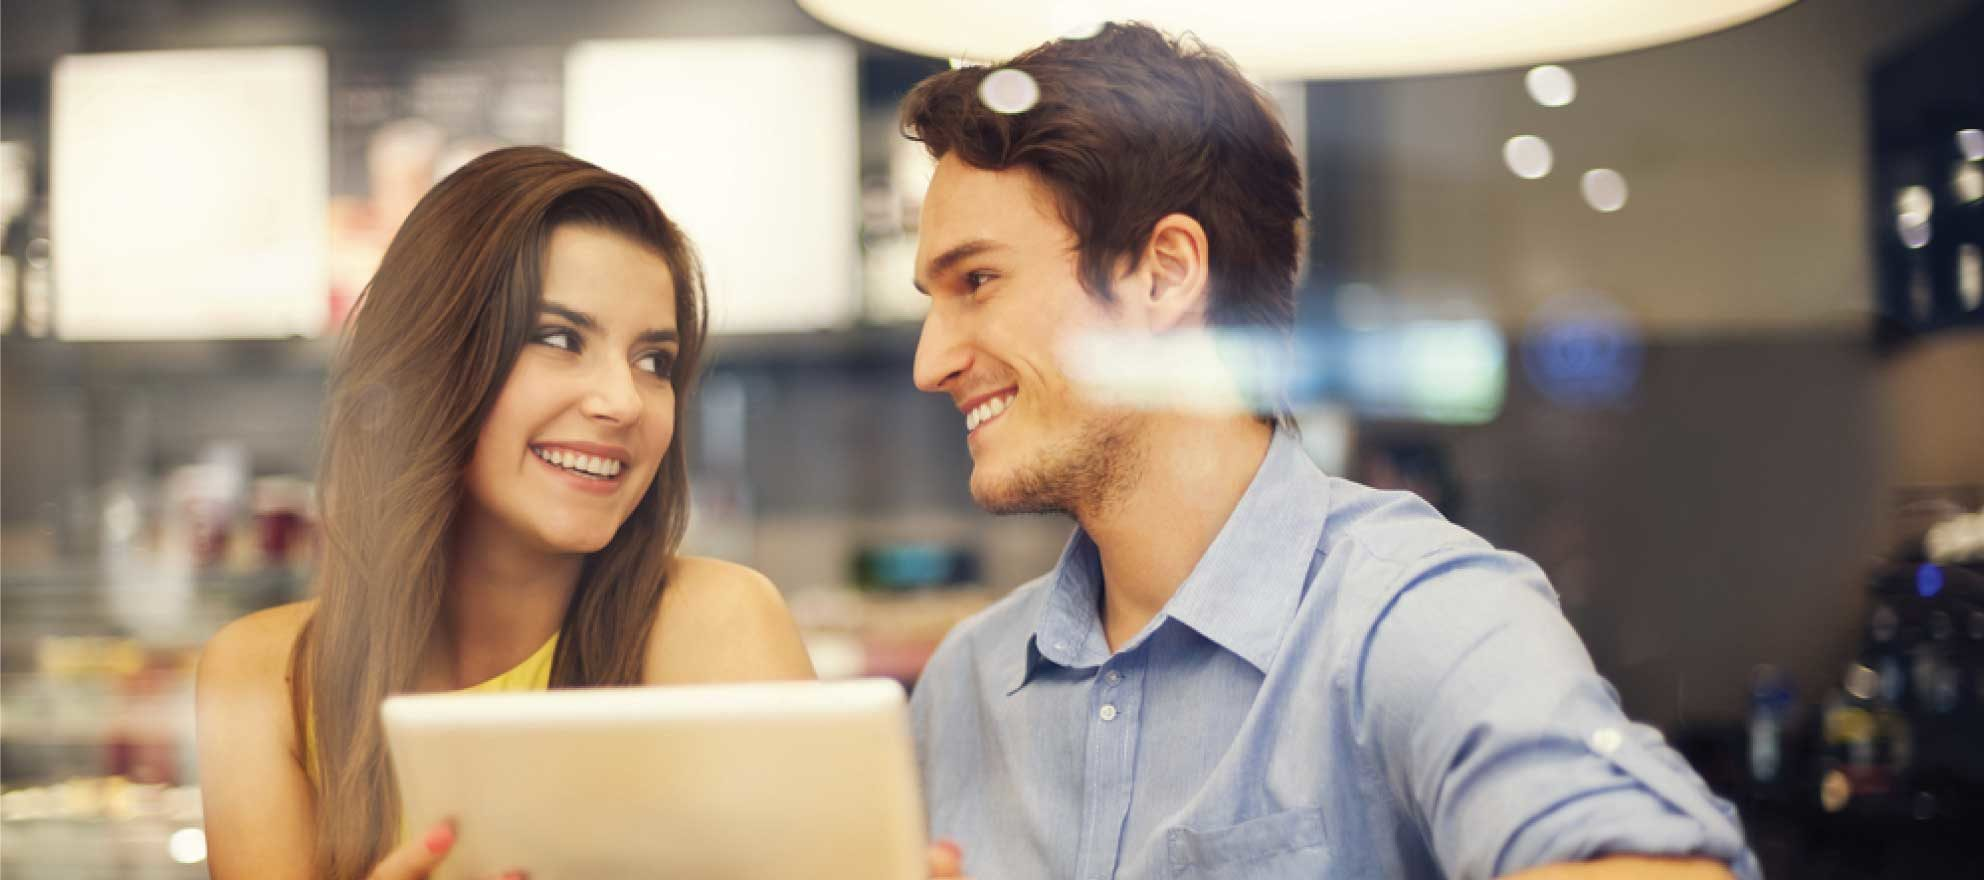 Win over millennial real estate clients with a 'team player' attitude